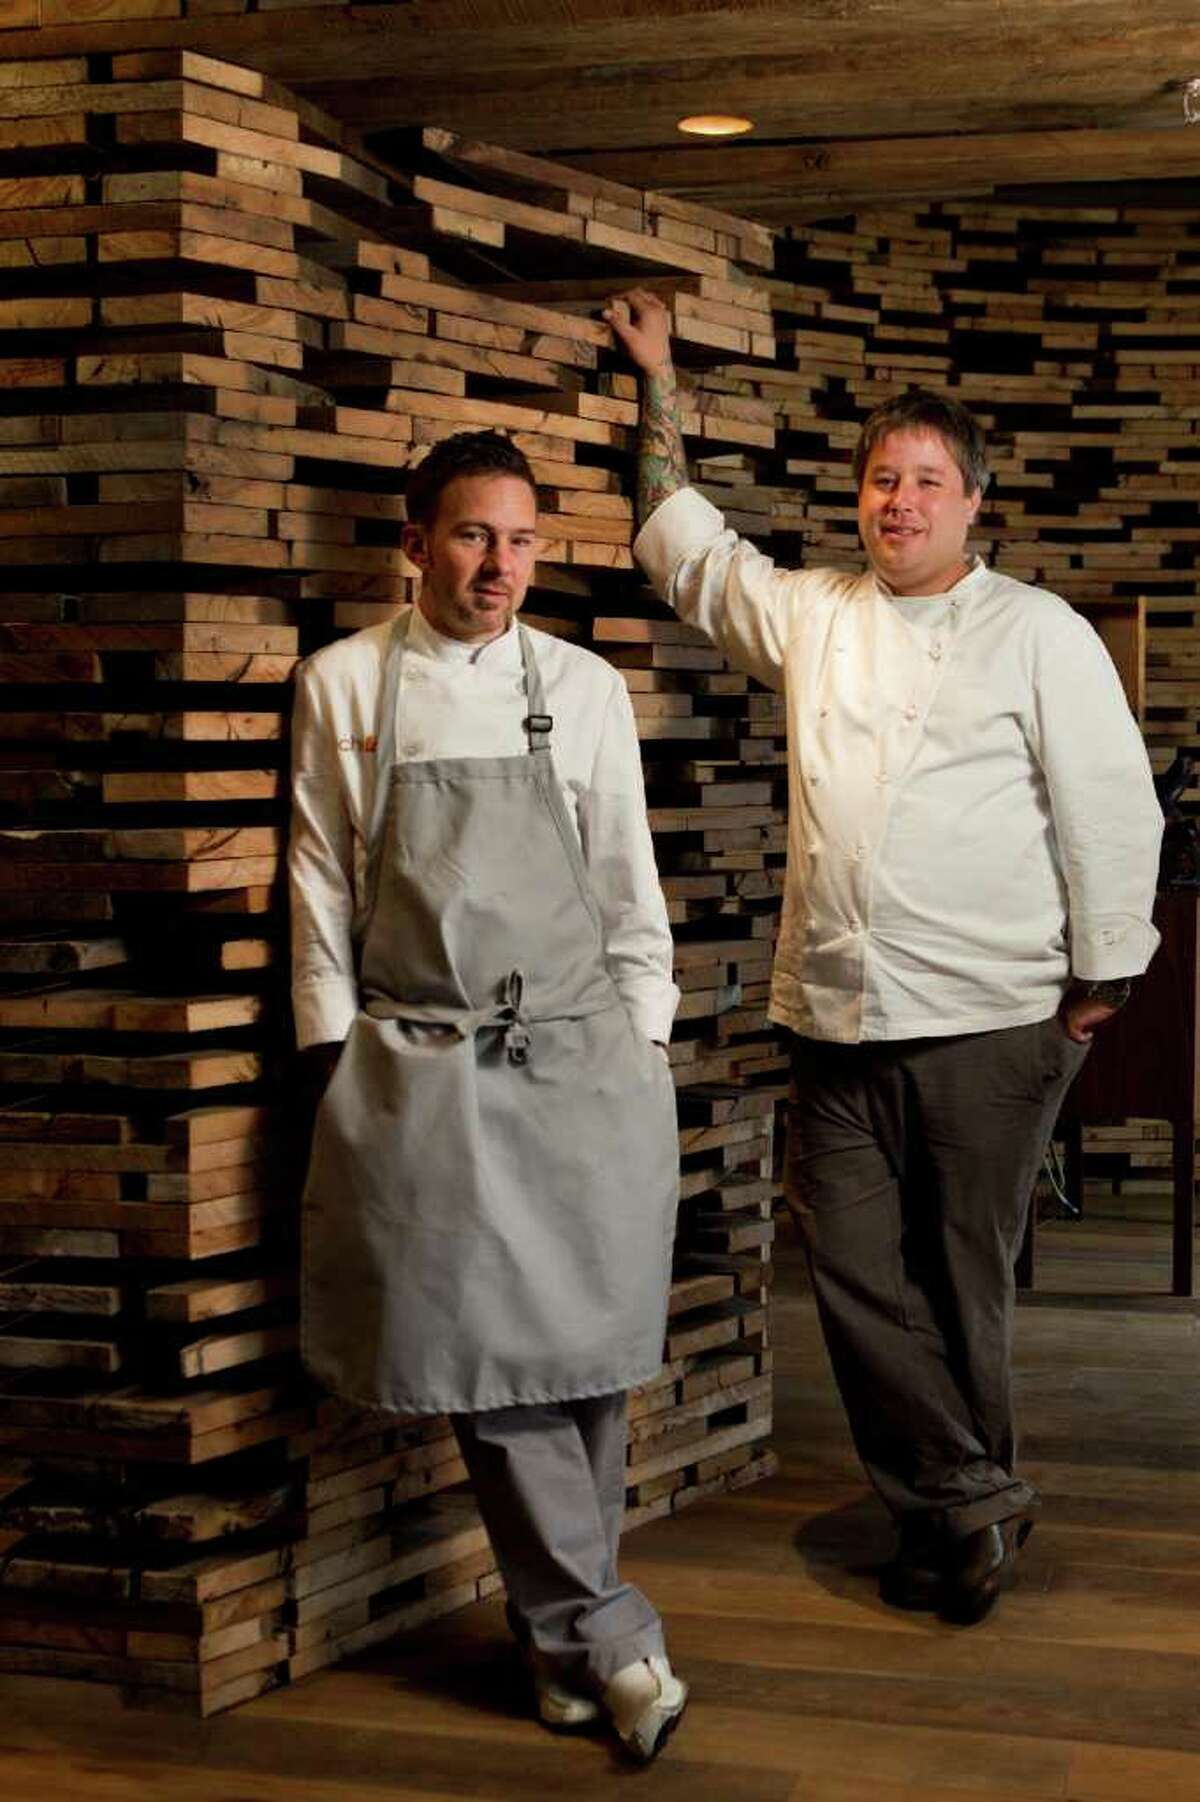 Tyson Cole, left, chef and owner, and Philip Speer, director of culinary operations, pose for a portrait at Uchi Thursday, Feb. 2, 2012, in Houston. ( Brett Coomer / Houston Chronicle )